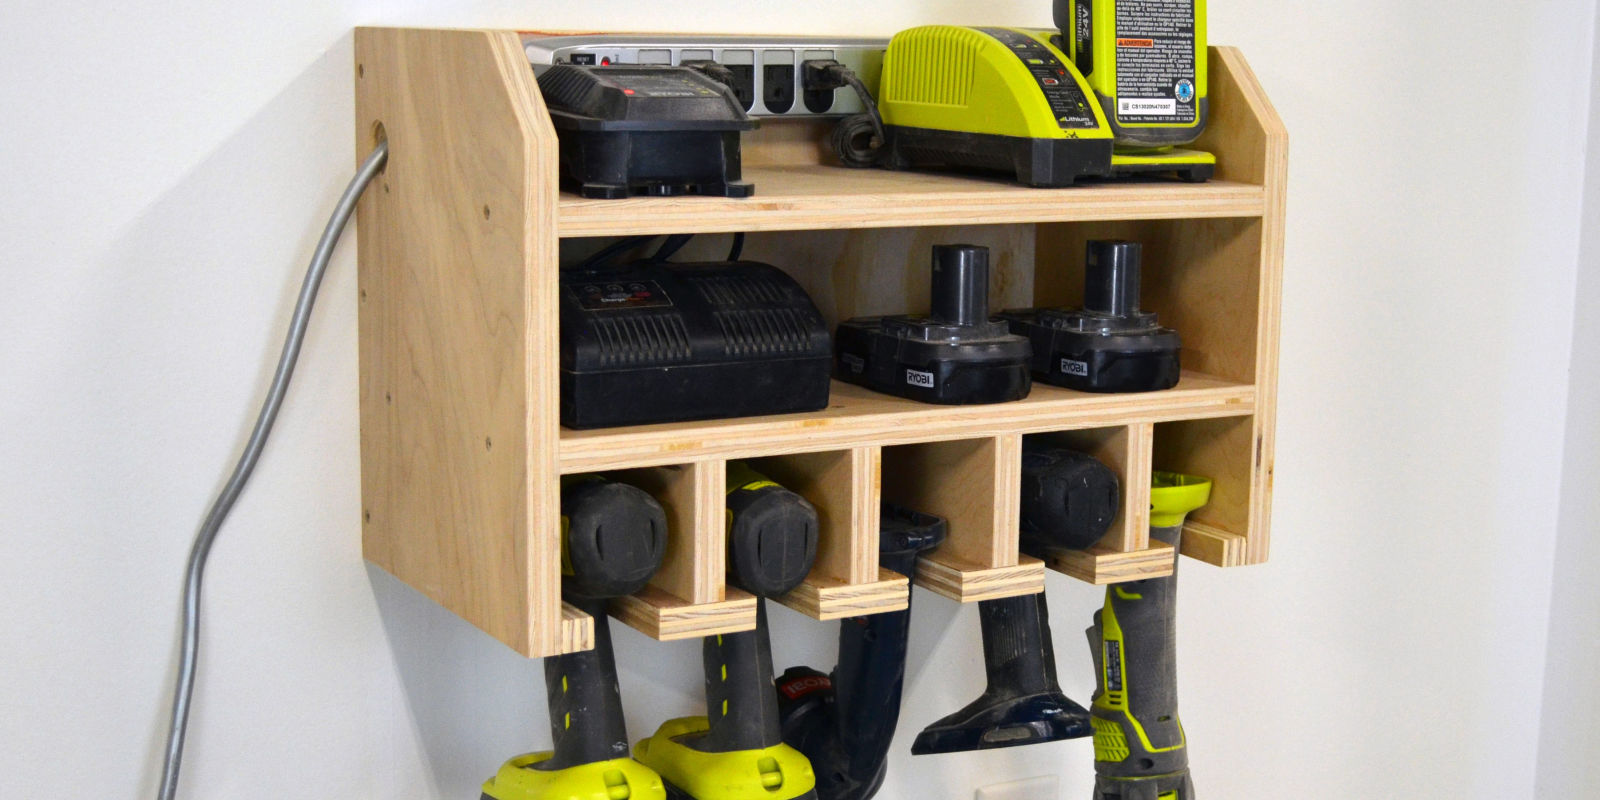 Tools For Diy Projects How To Build A Storage Dock For Your Cordless Drill